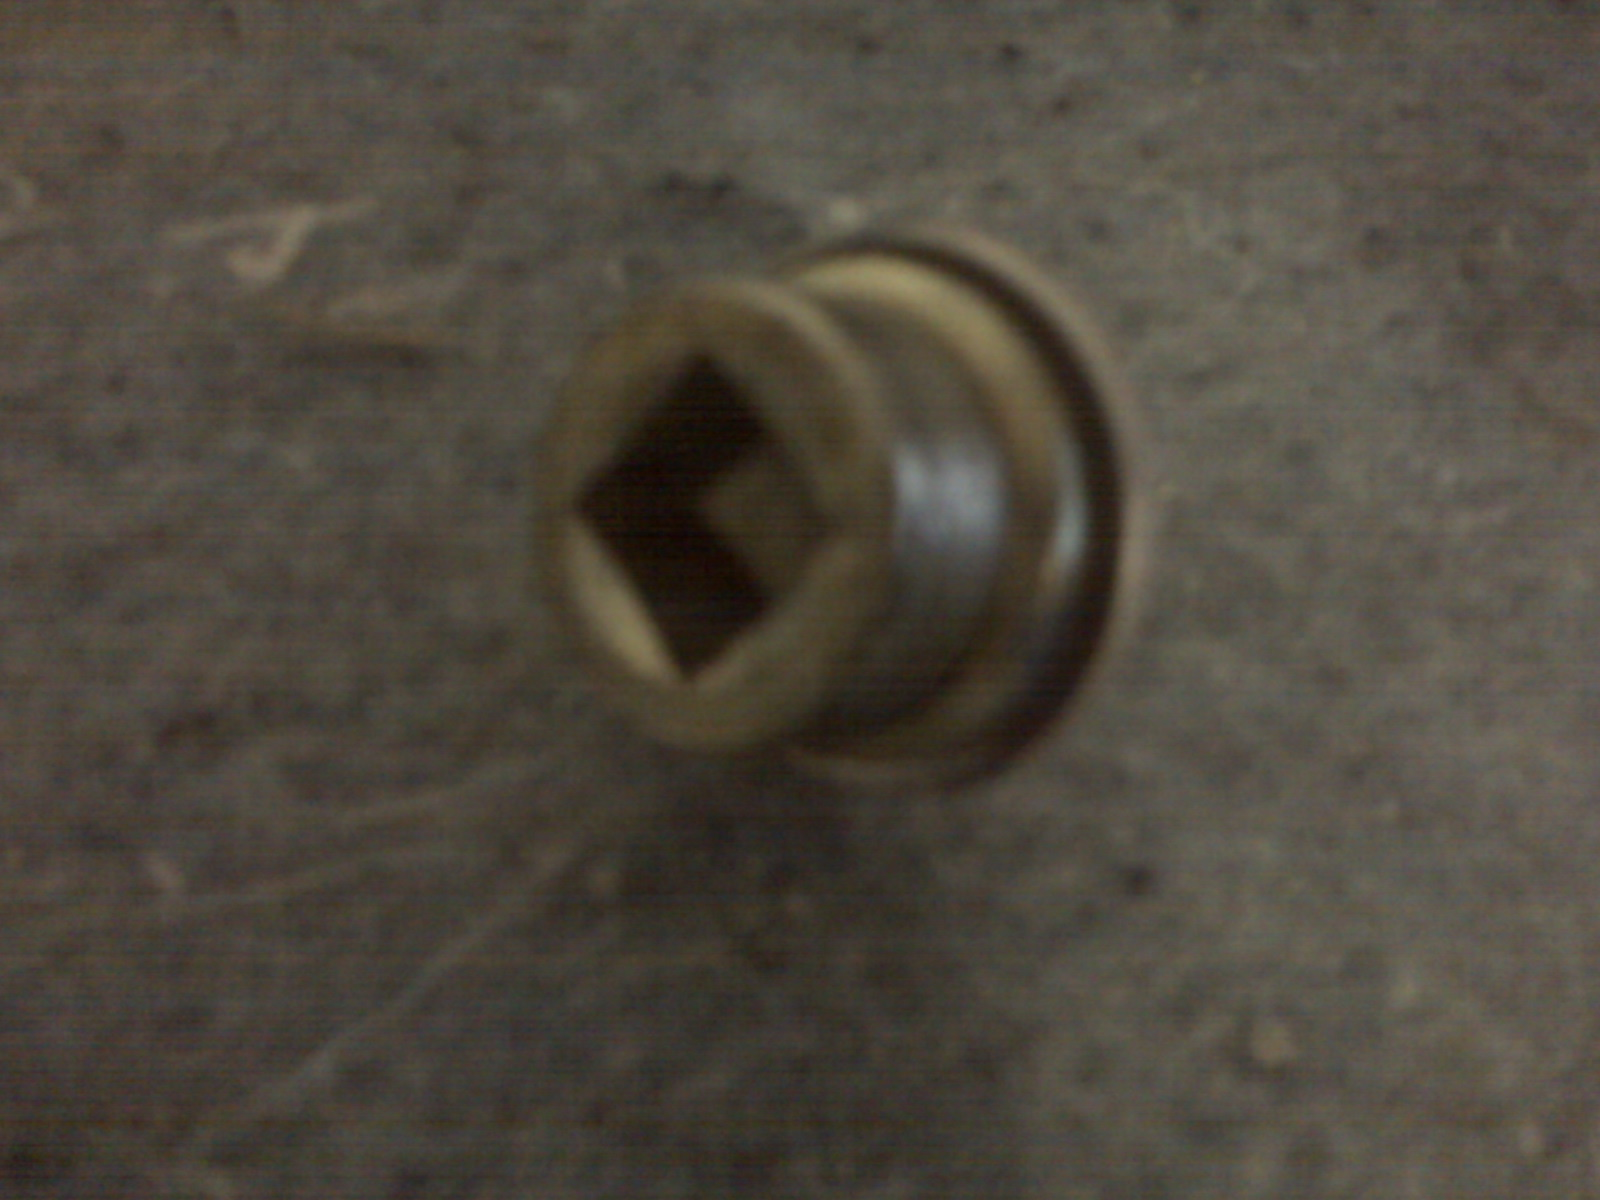 Drain plug can be removed using a socket wrench